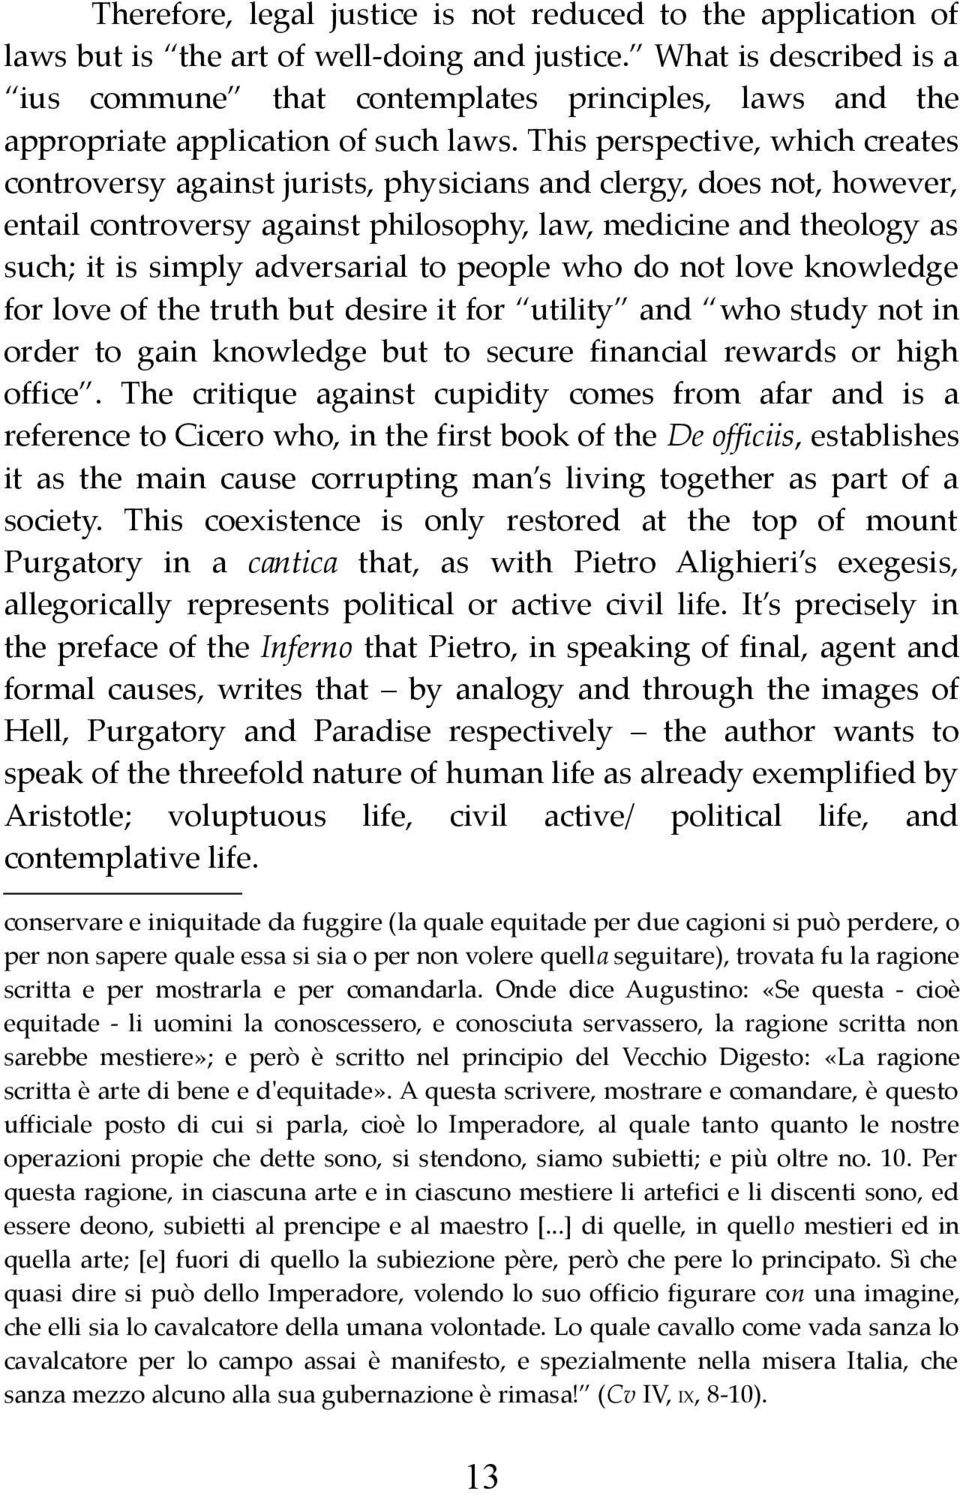 This perspective, which creates controversy against jurists, physicians and clergy, does not, however, entail controversy against philosophy, law, medicine and theology as such; it is simply